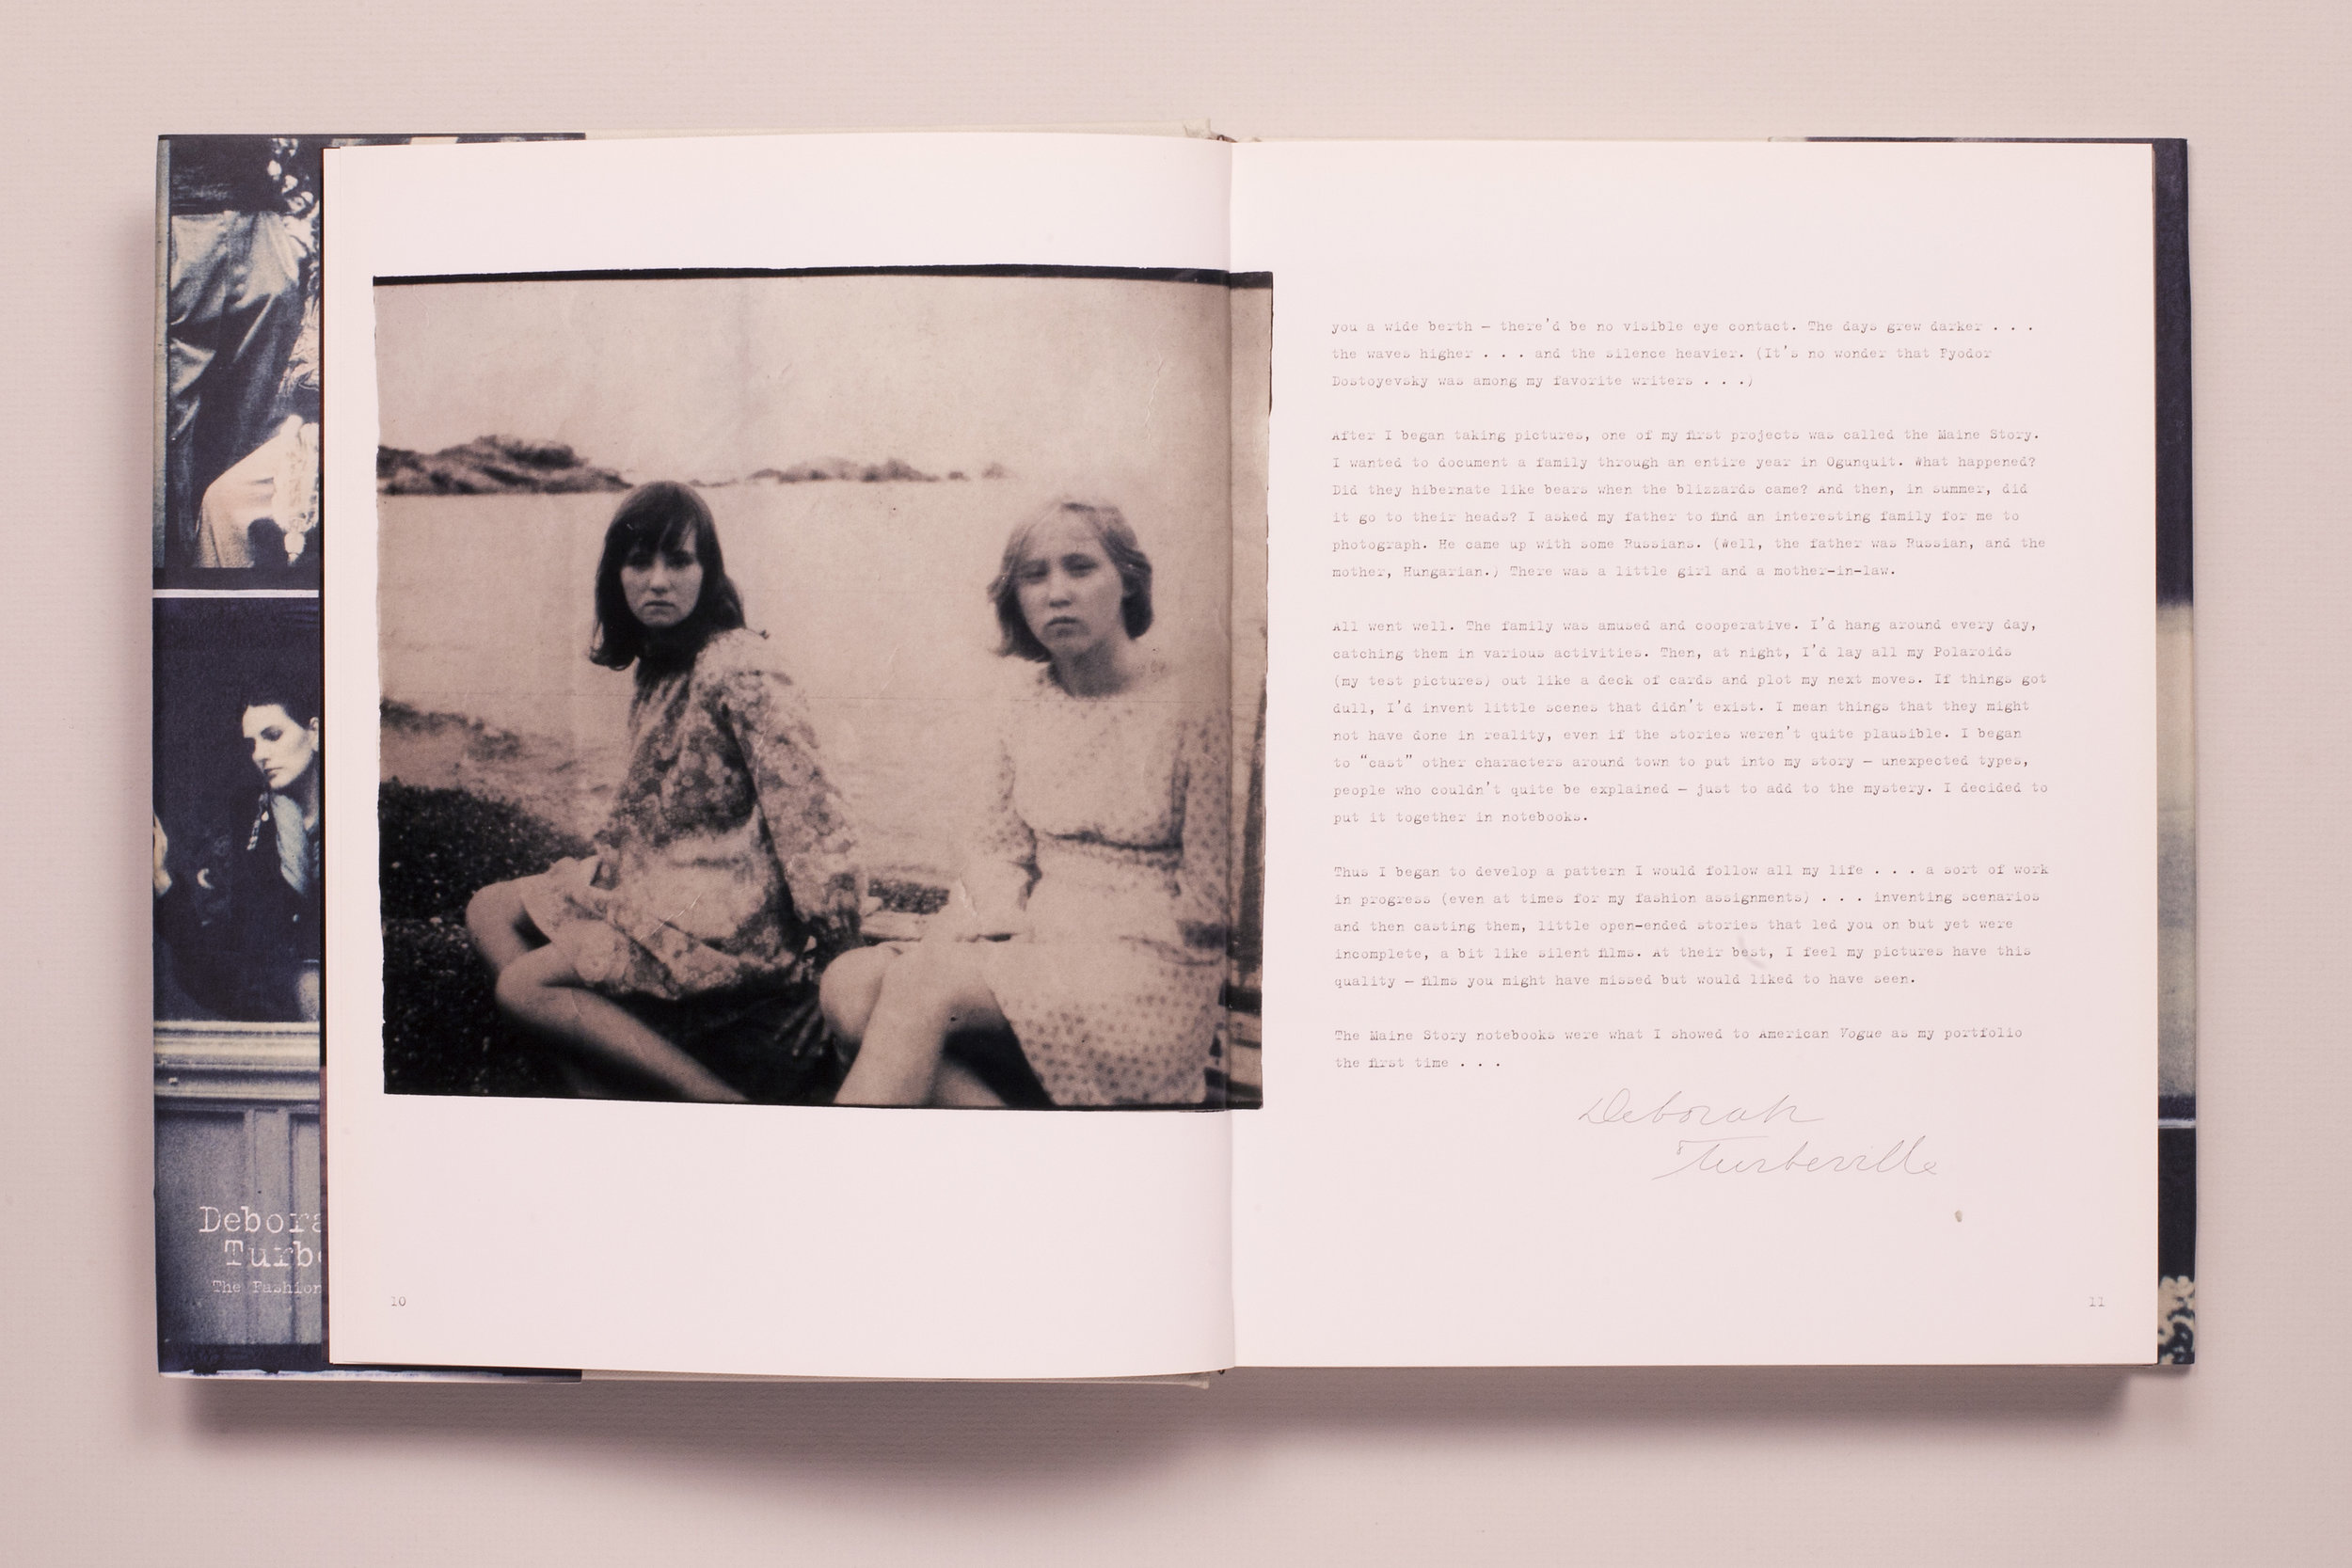 Deborah Turbeville: The Fashion Pictures (Rizzoli)